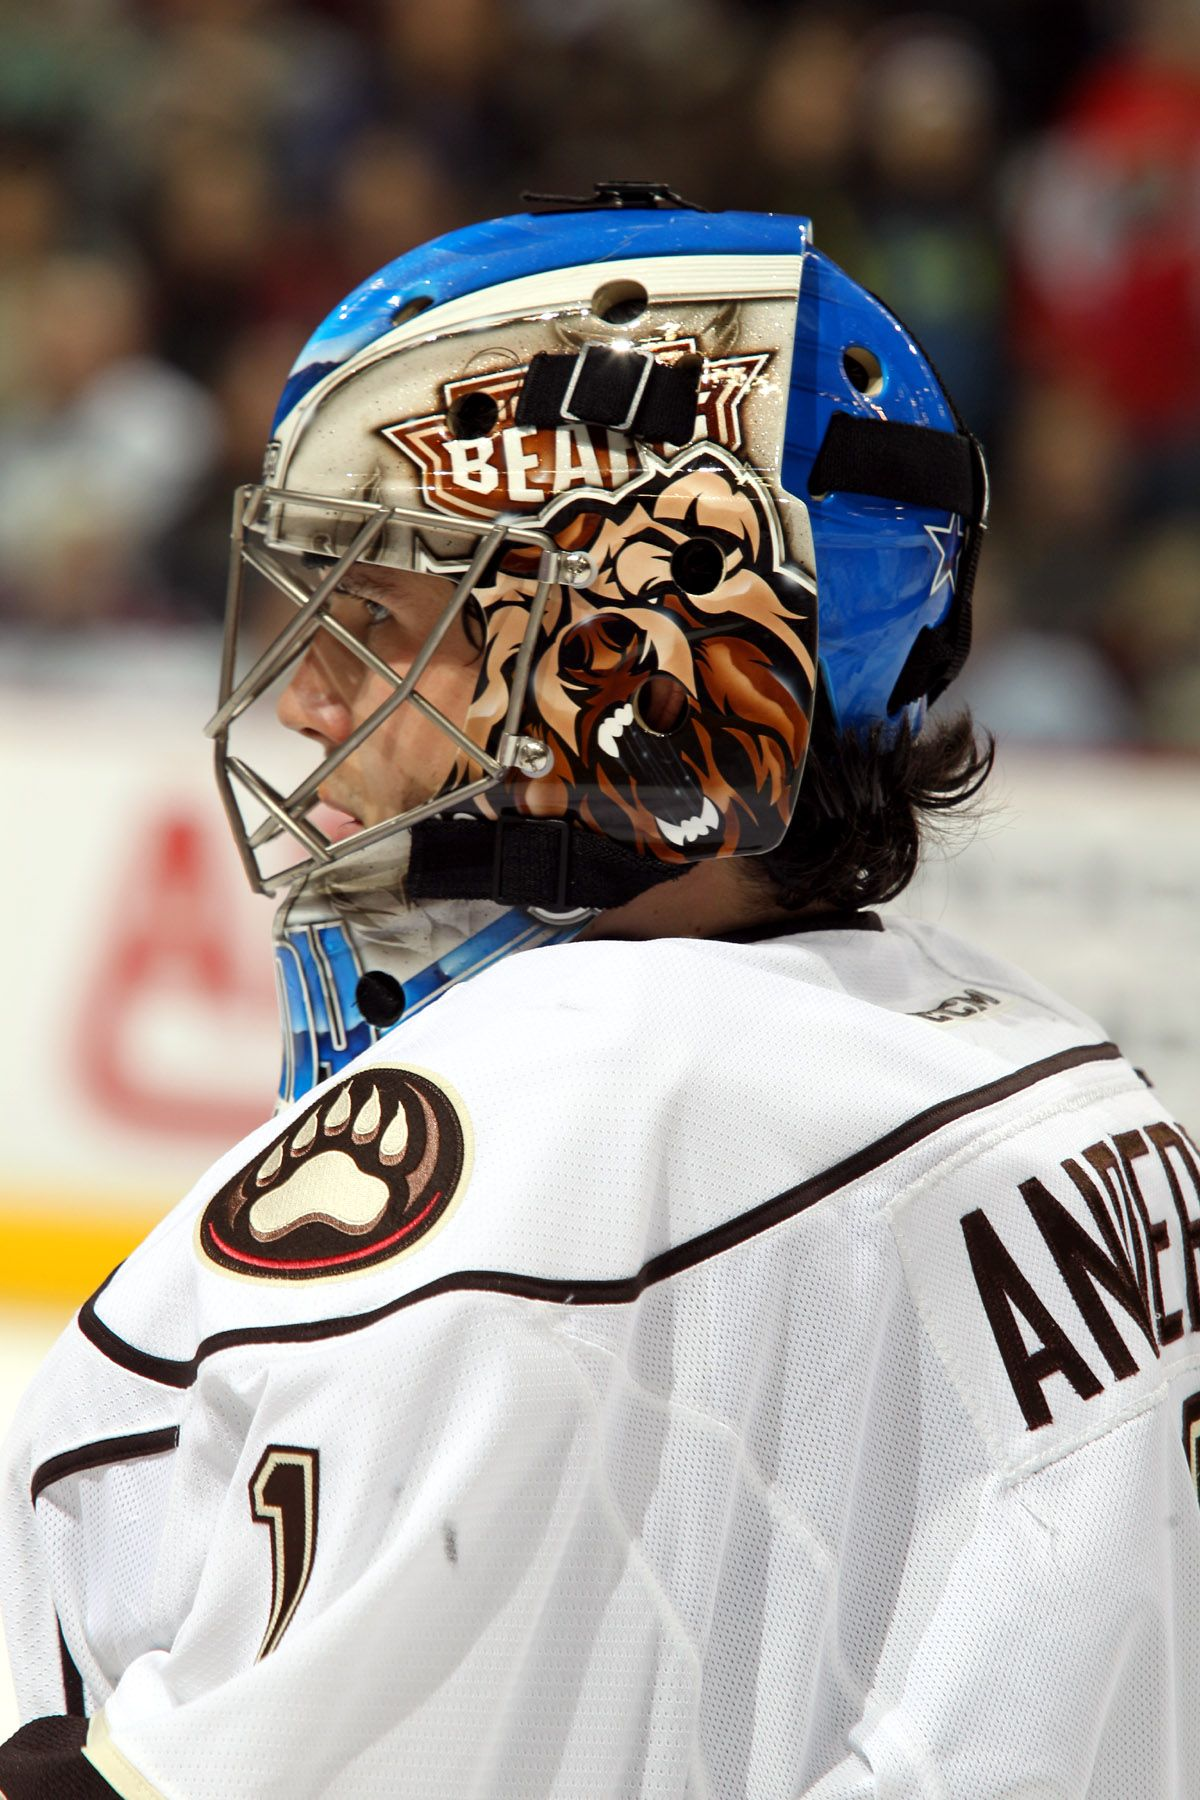 852340b1f18 01.10.15 - Brandon Anderson supporting the Hershey Bears on his goalie  mask. Brandon earned his first AHL win this game against Norfolk.